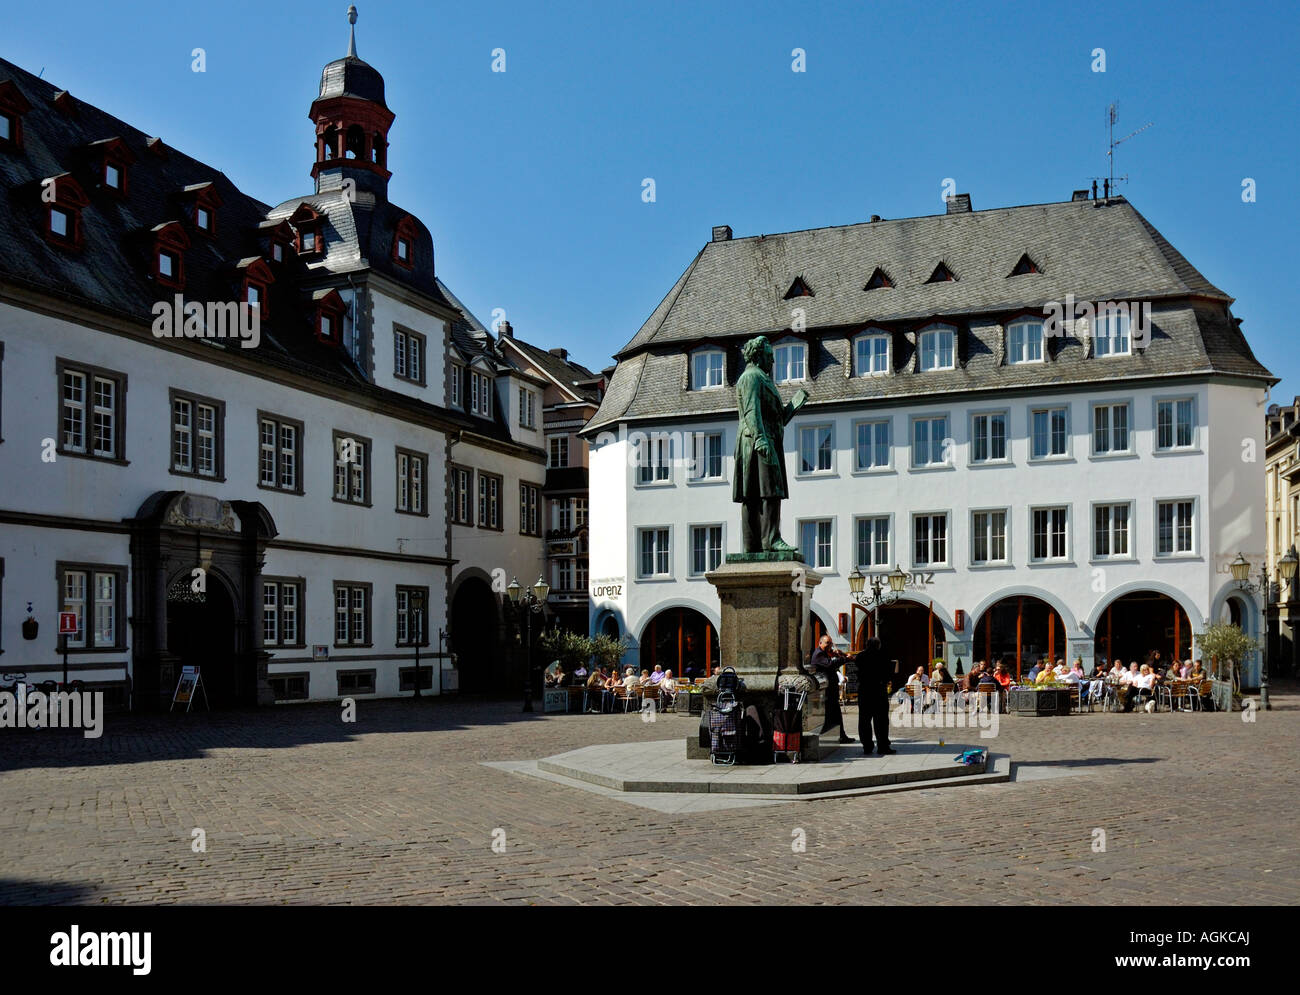 town hall and caf jesuit square in koblenz germany stock photo royalty free image 14232185. Black Bedroom Furniture Sets. Home Design Ideas